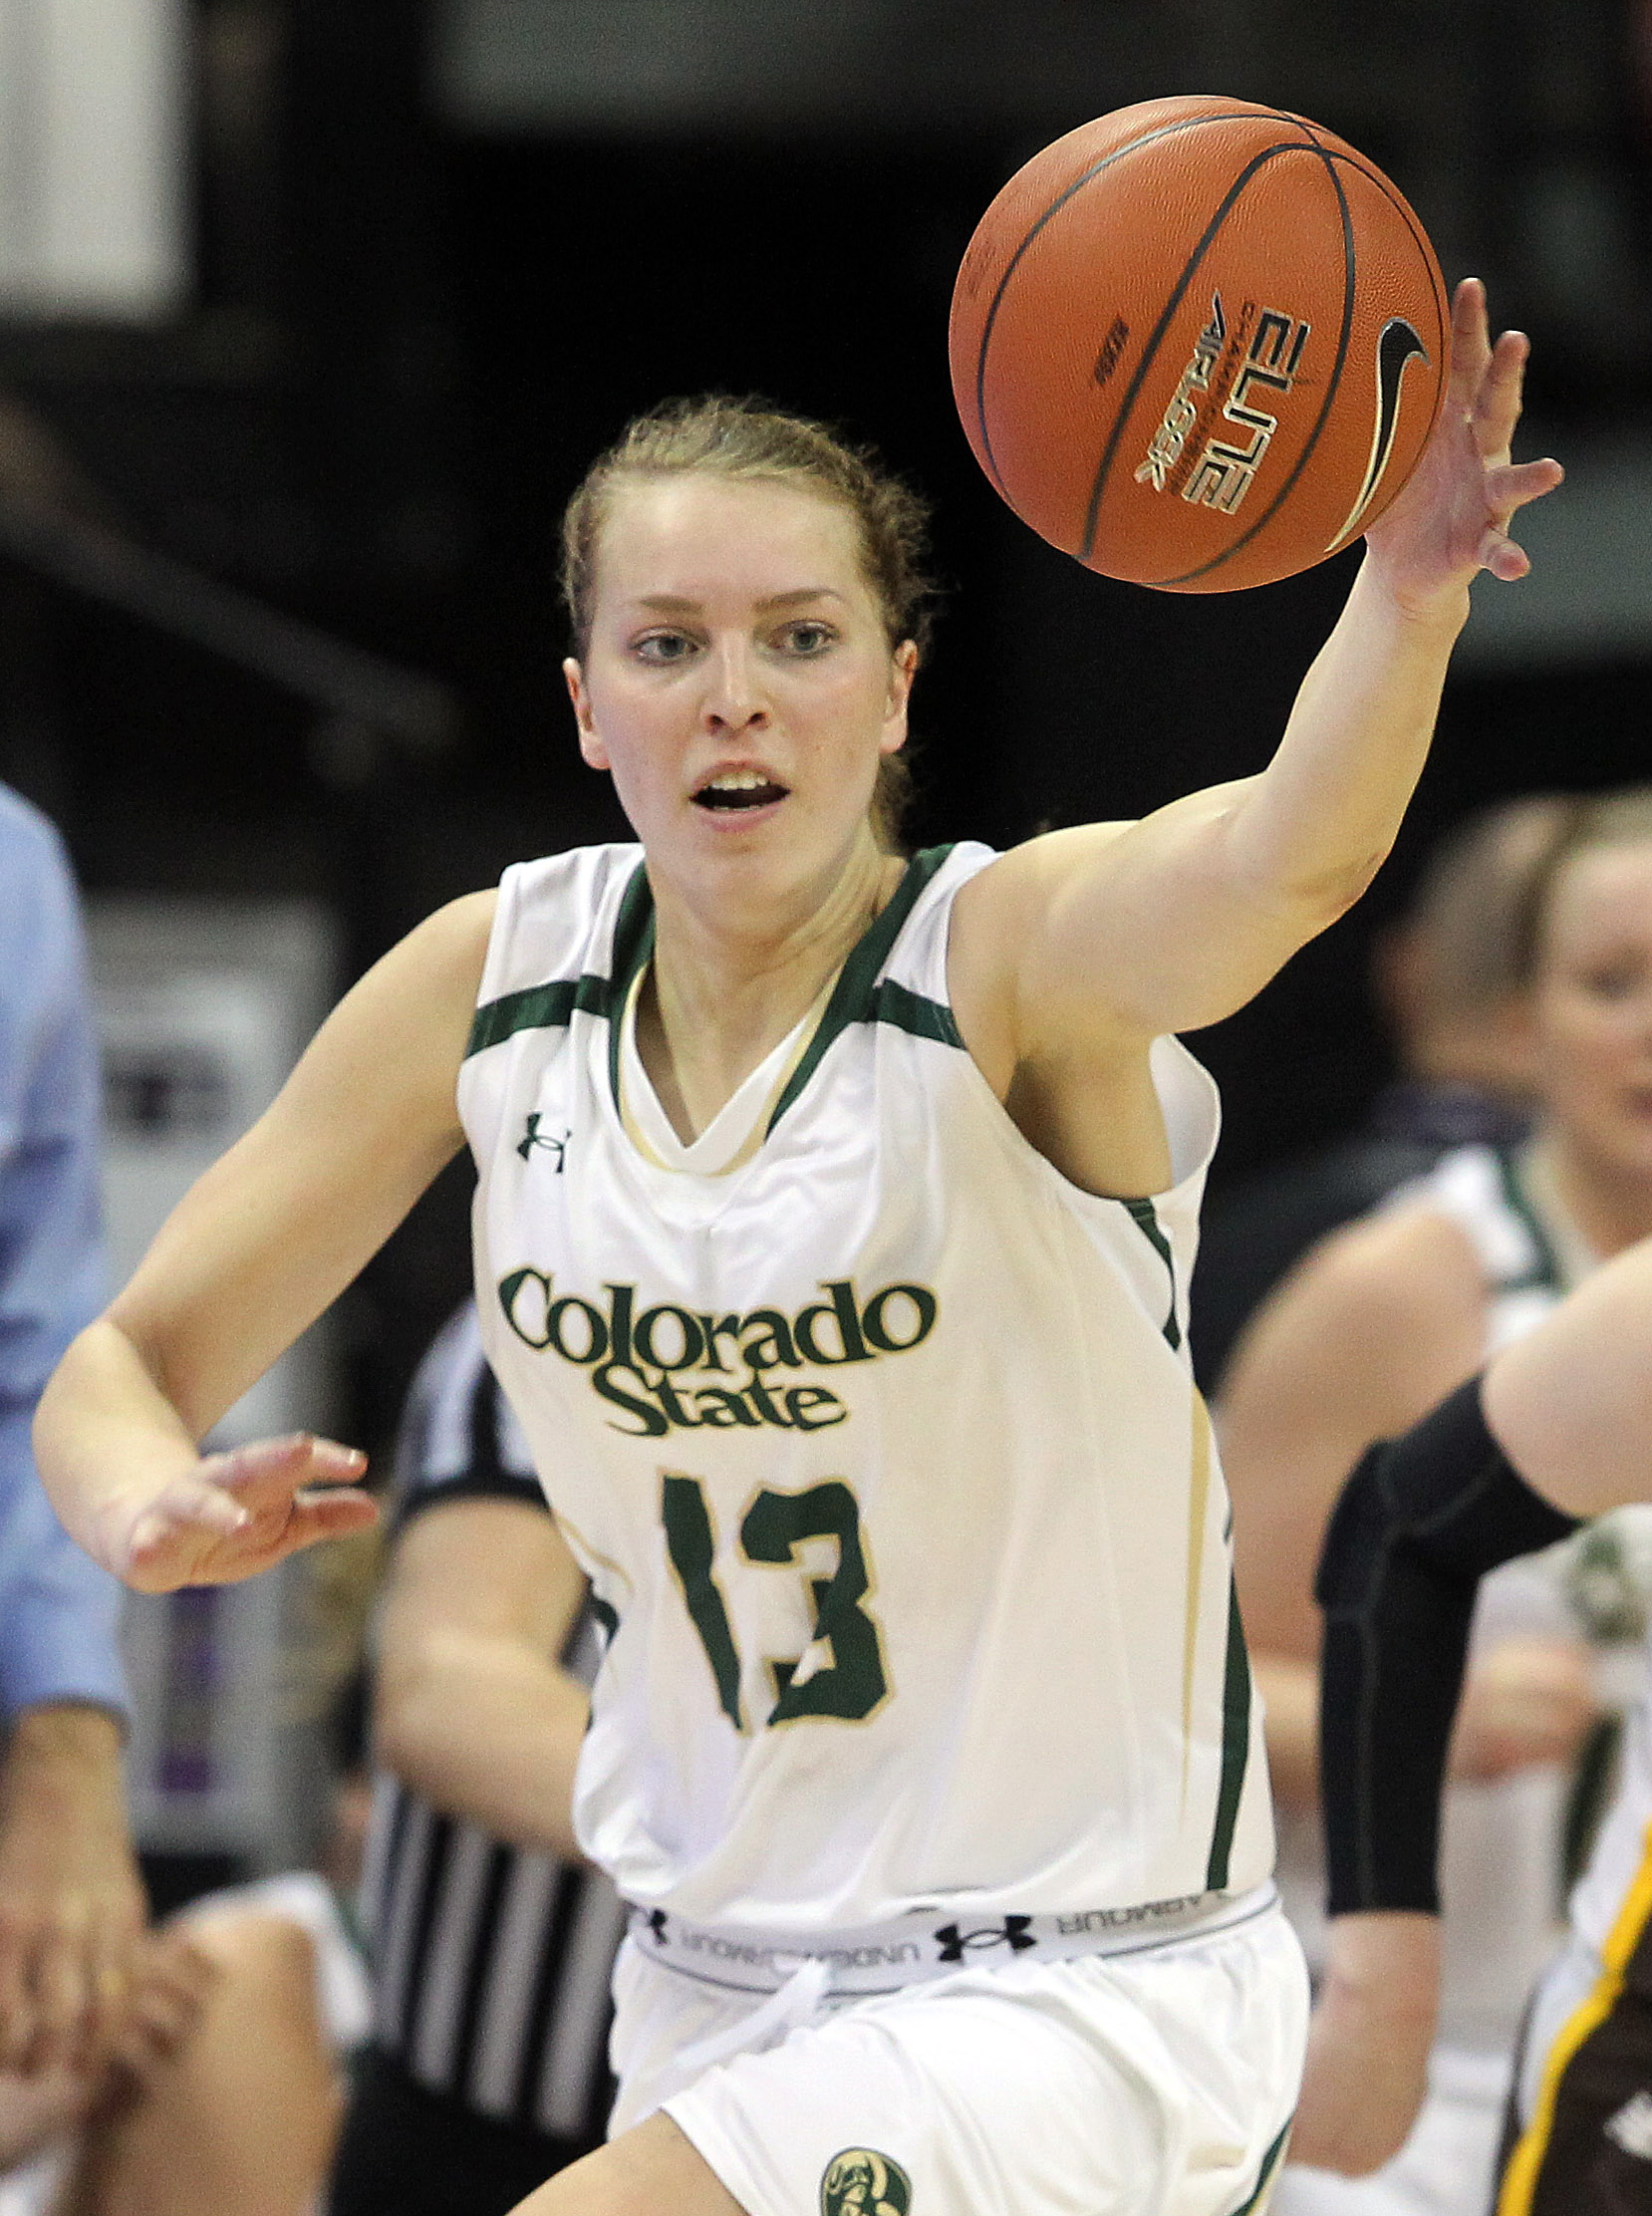 FILE - In this Friday, March 14, 2014 file photo, Colorado State's Ellen Nystrom goes after a loose ball during the first half of an NCAA college basketball game in the semifinals of the Mountain West Conference tournament in Las Vegas. Swedish do-everyth